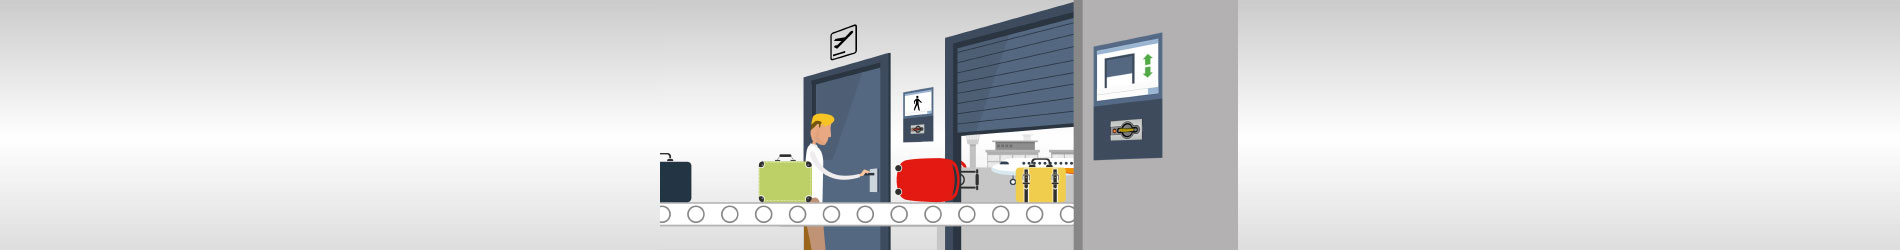 Manage access control